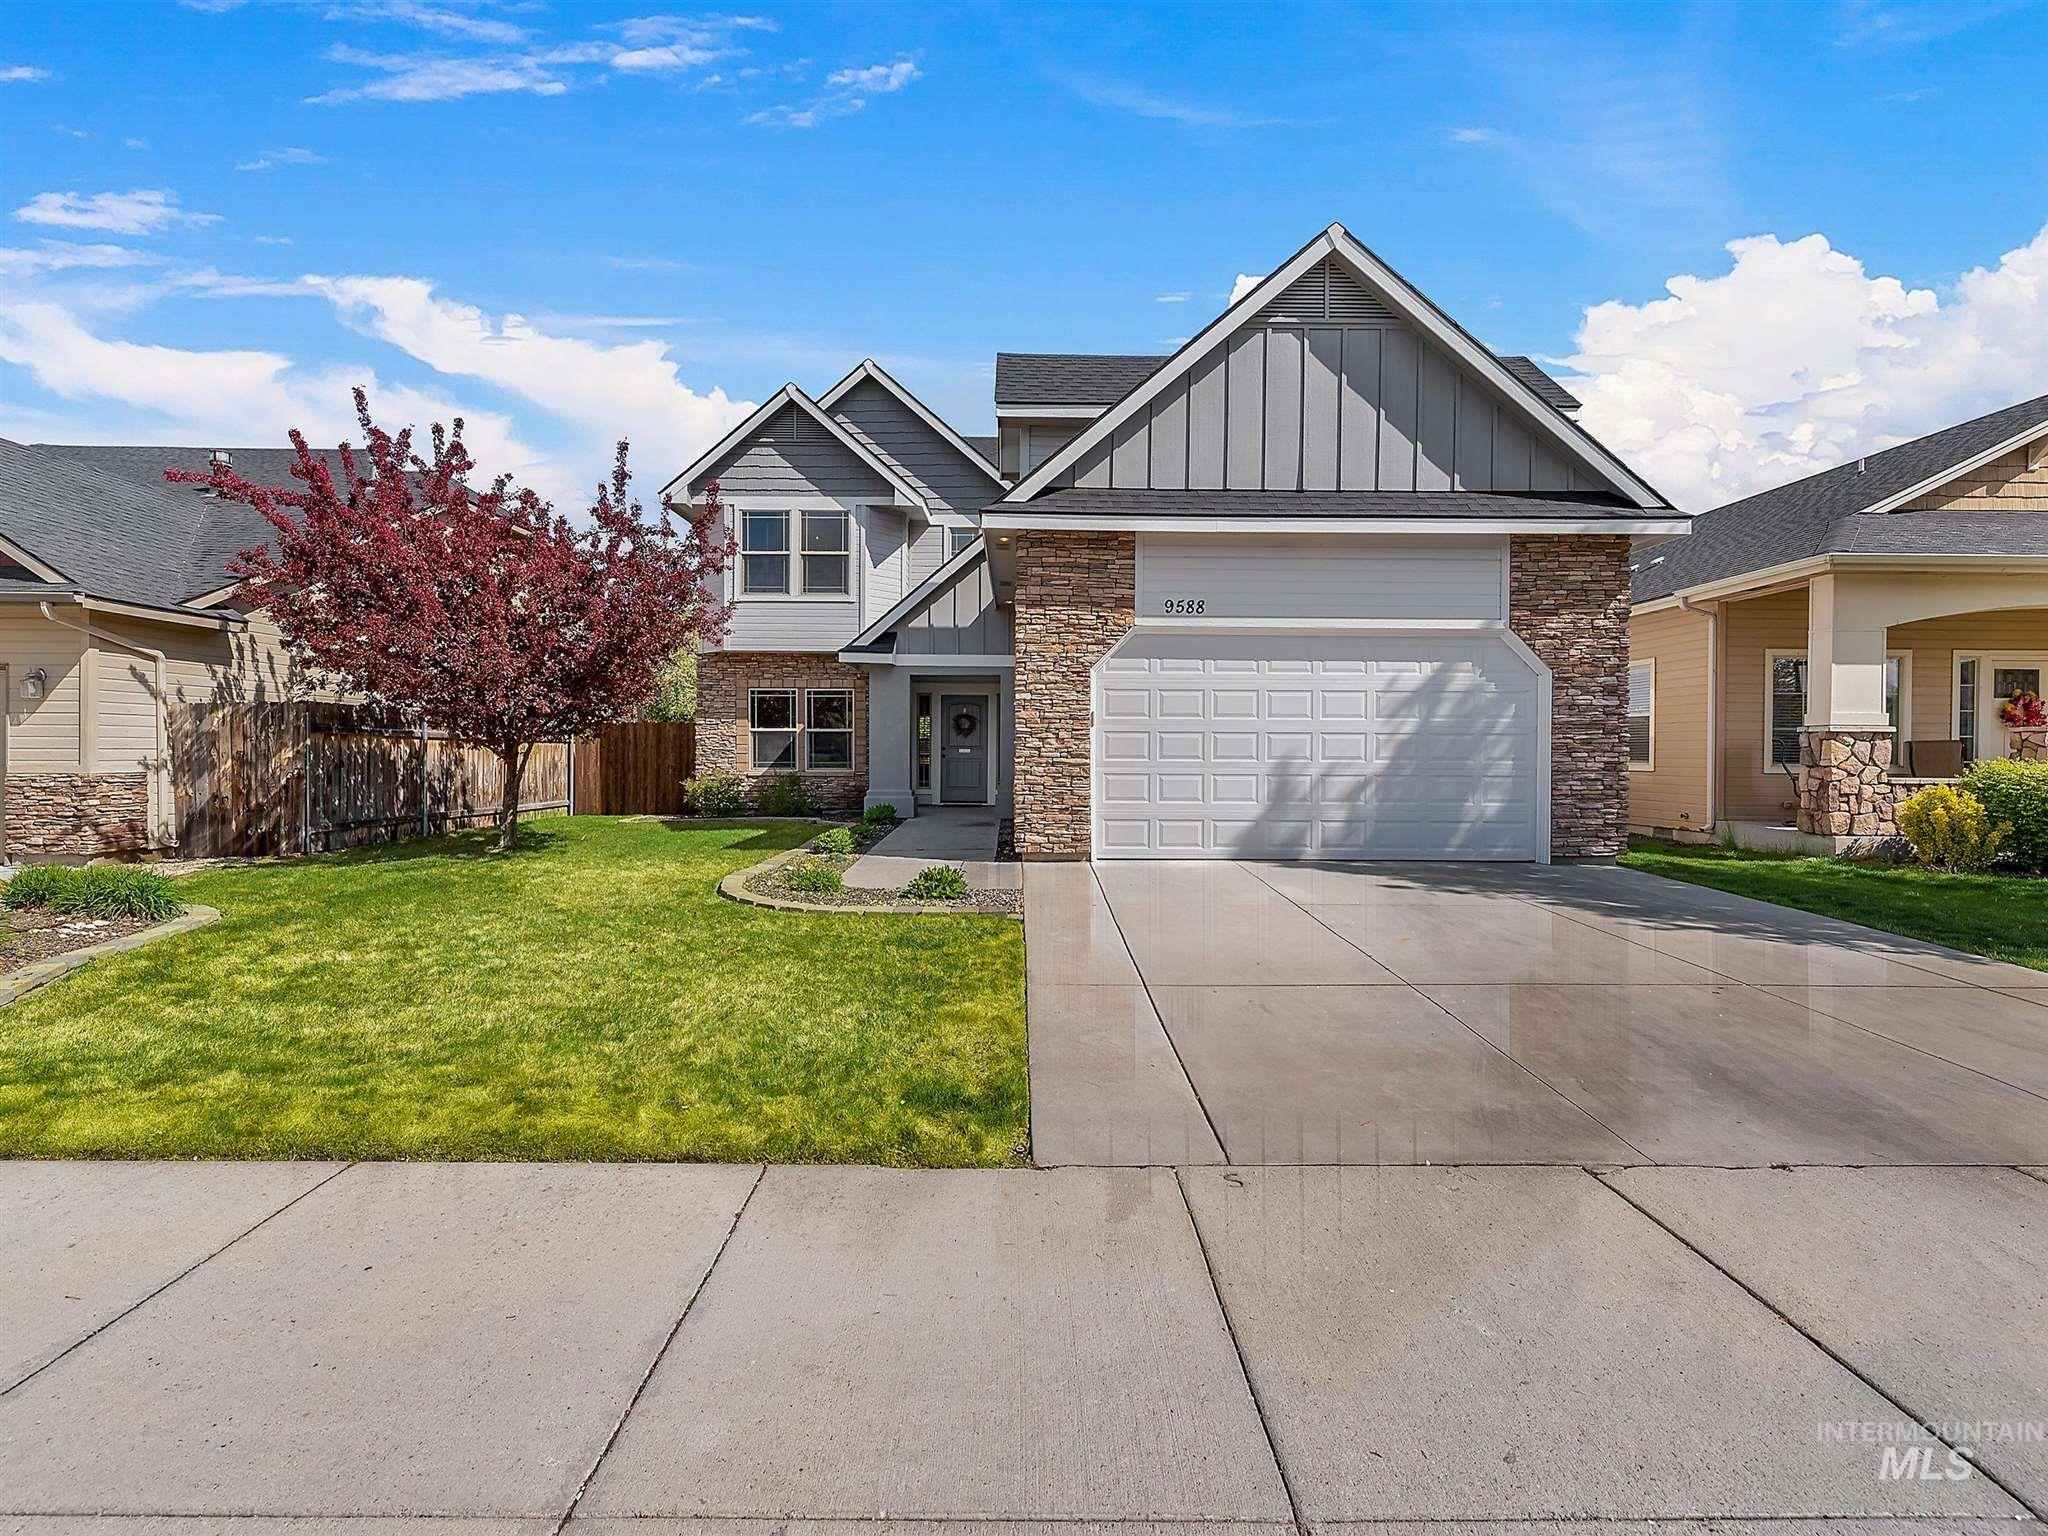 9588 W Blue Meadows St Property Photo - Boise, ID real estate listing